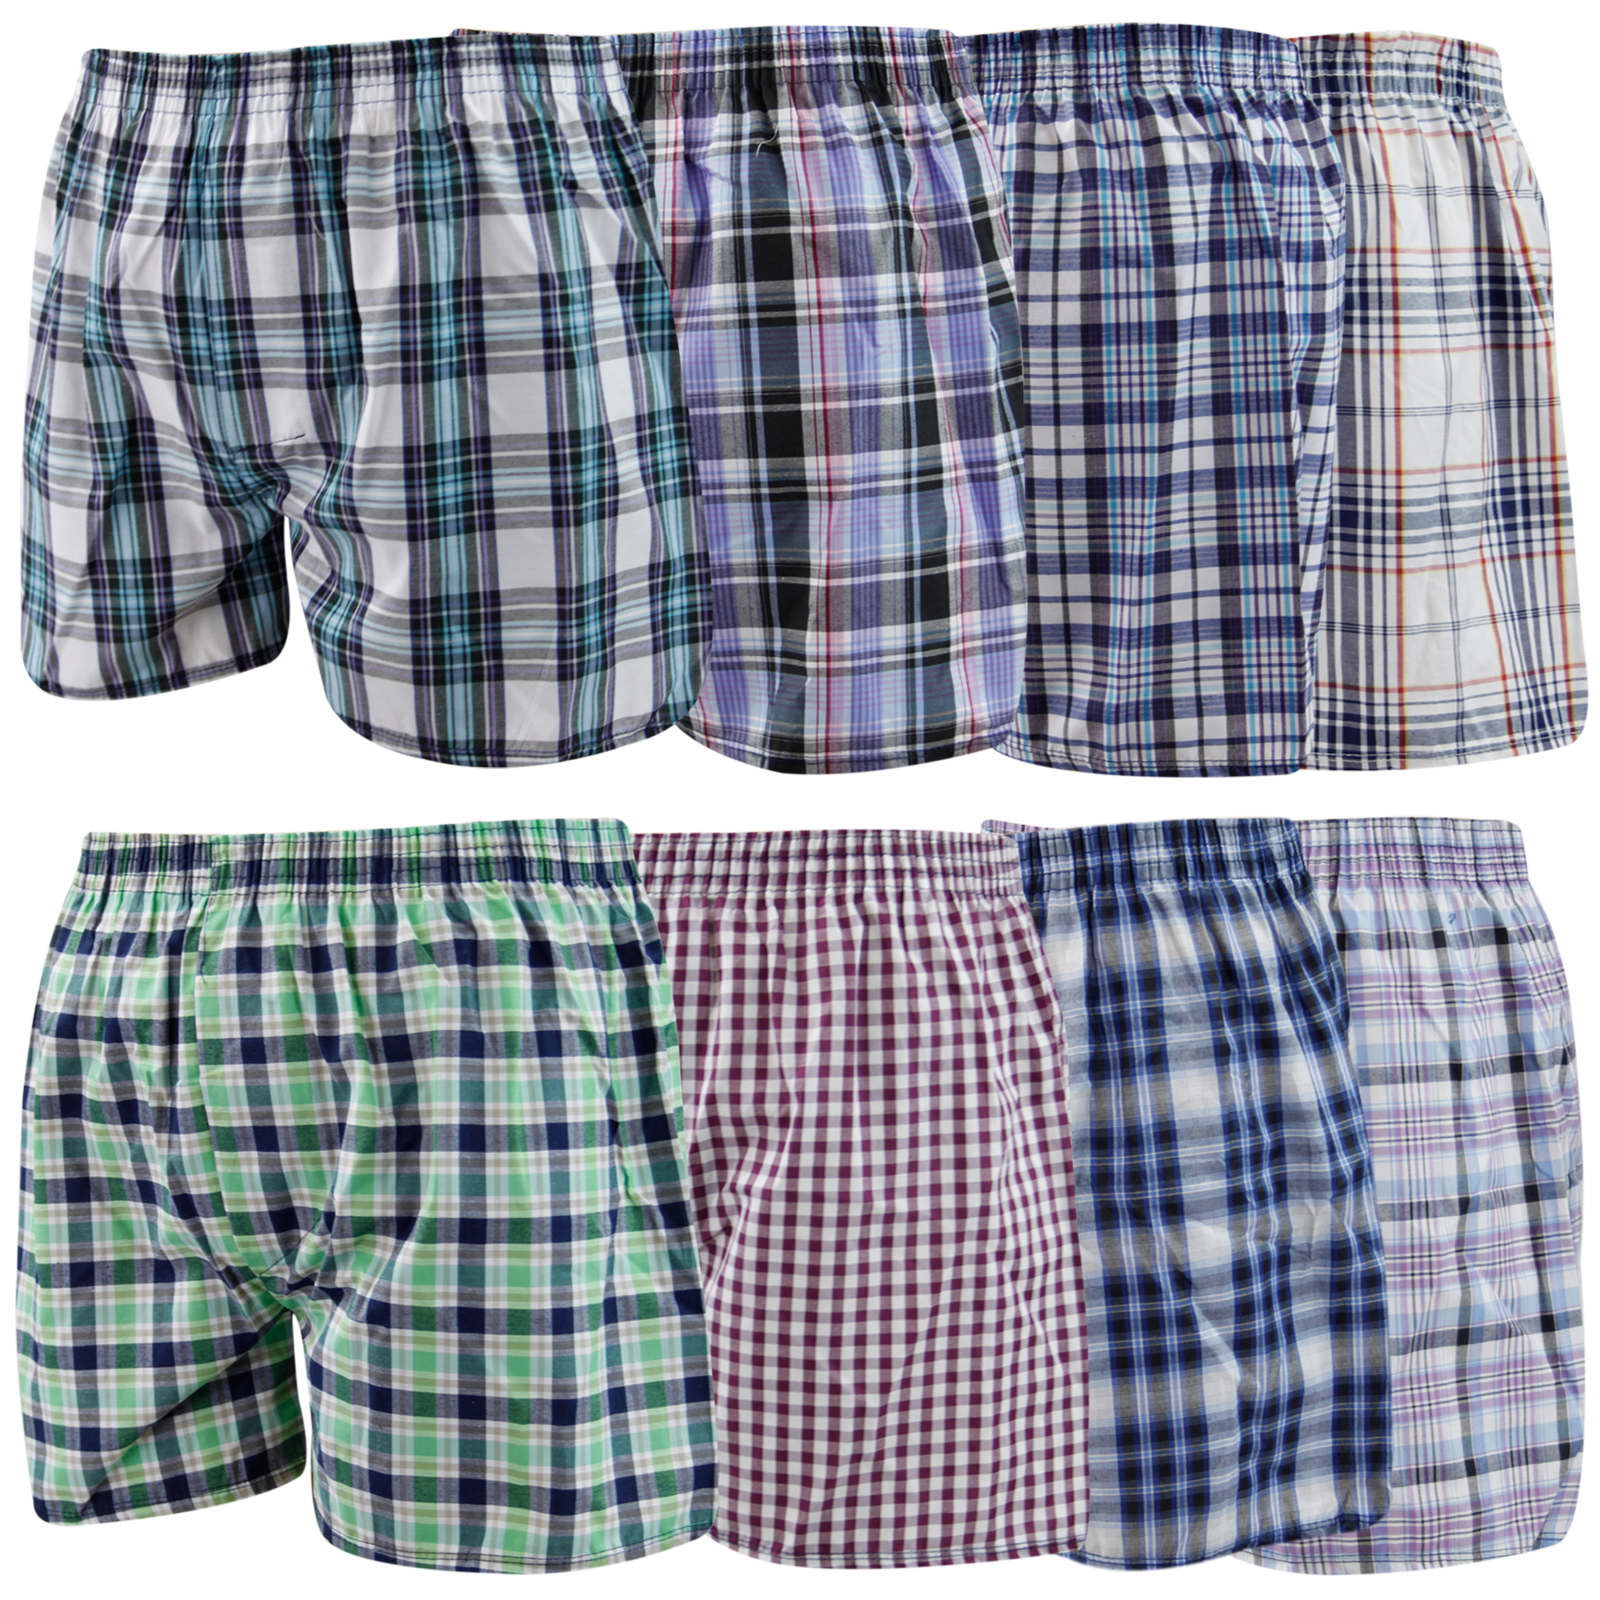 6 pack mens woven check print poly cotton boxer shorts. Black Bedroom Furniture Sets. Home Design Ideas